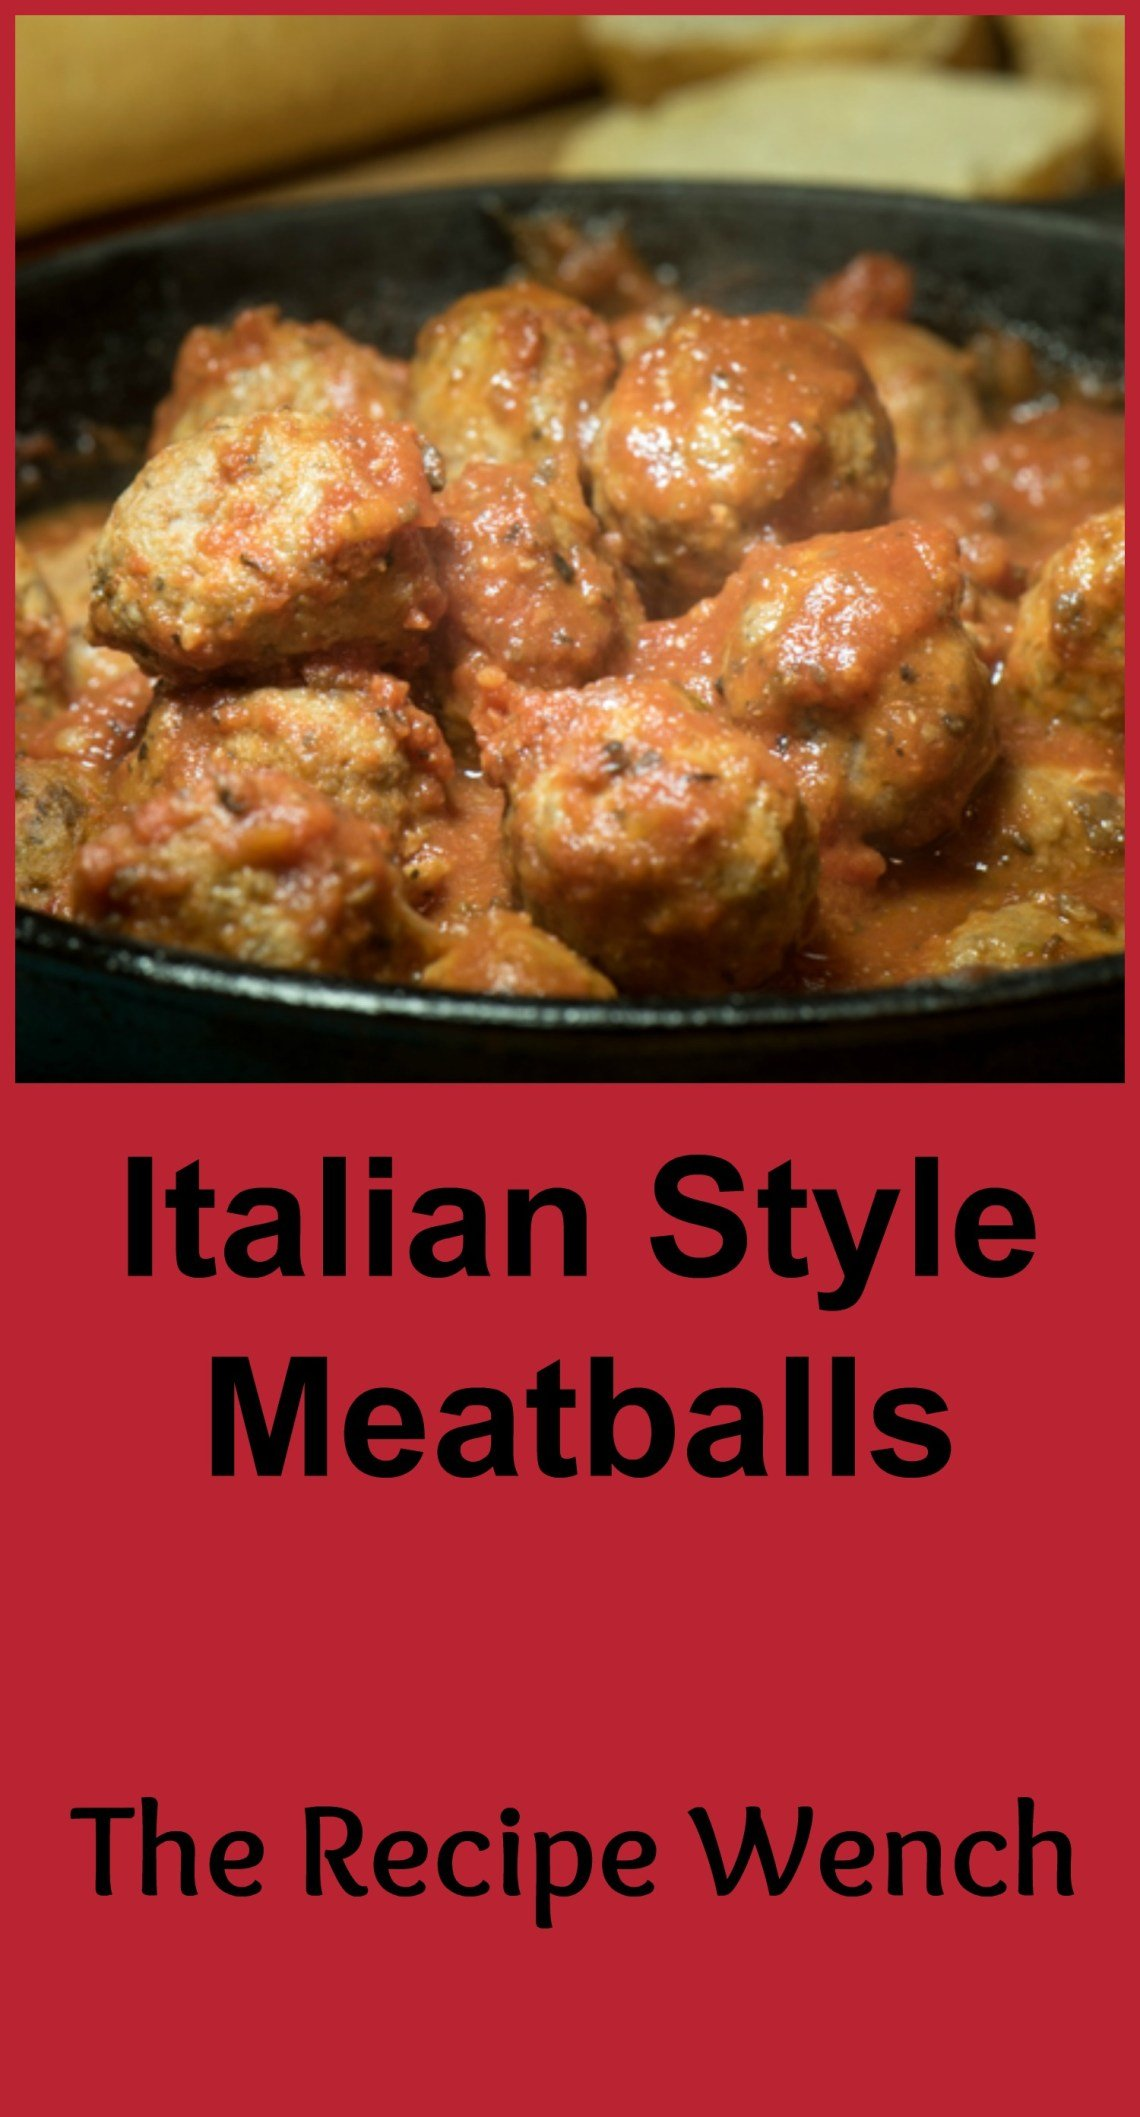 Italian style meatballs - super easy and versatile. Make smaller to serve as appetizers or larger to go into sauce or on a chewy Italian roll with lots of melted mozzarella!  